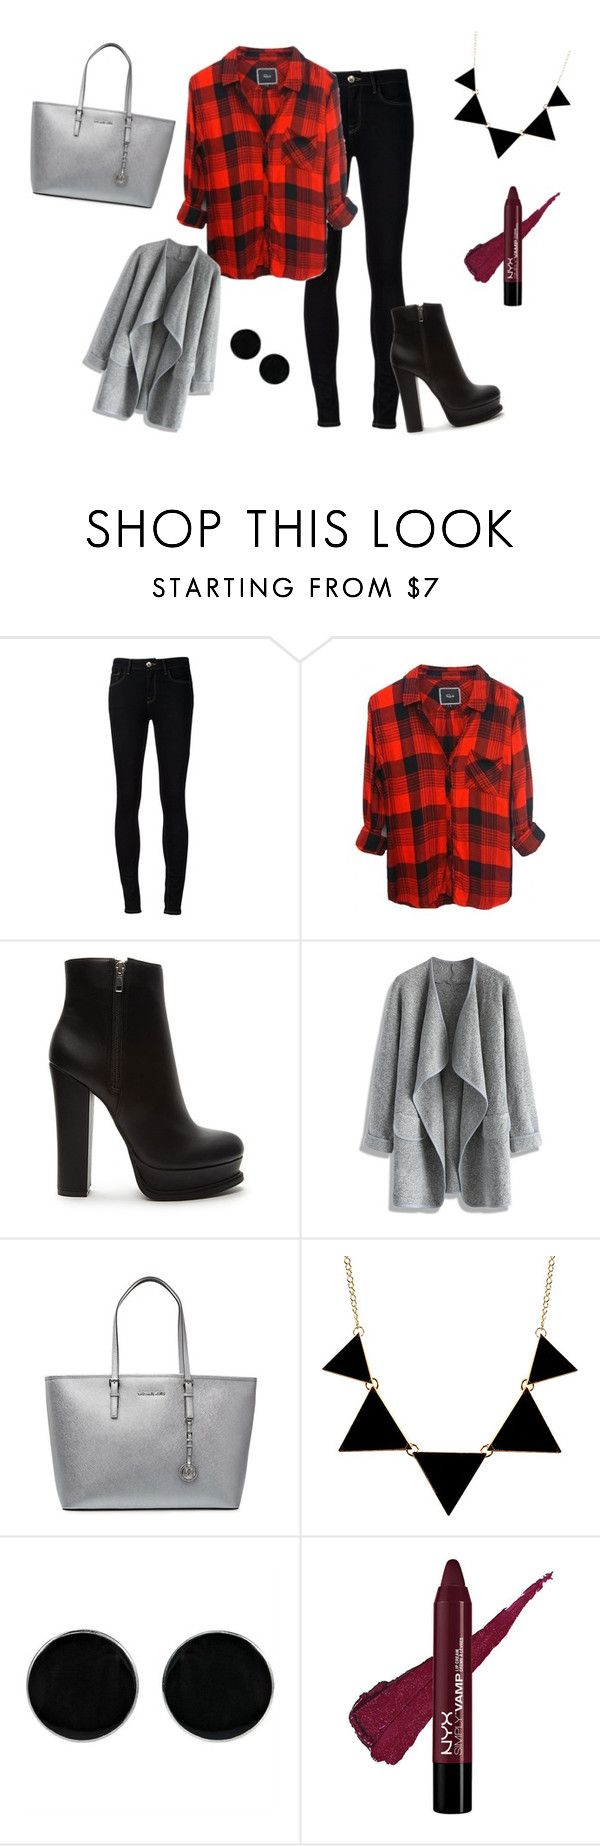 """Jesienny szyk"" by dagusia112 on Polyvore featuring moda, Ström, Forever 21, Chicwish, MICHAEL Michael Kors i AeraVida"